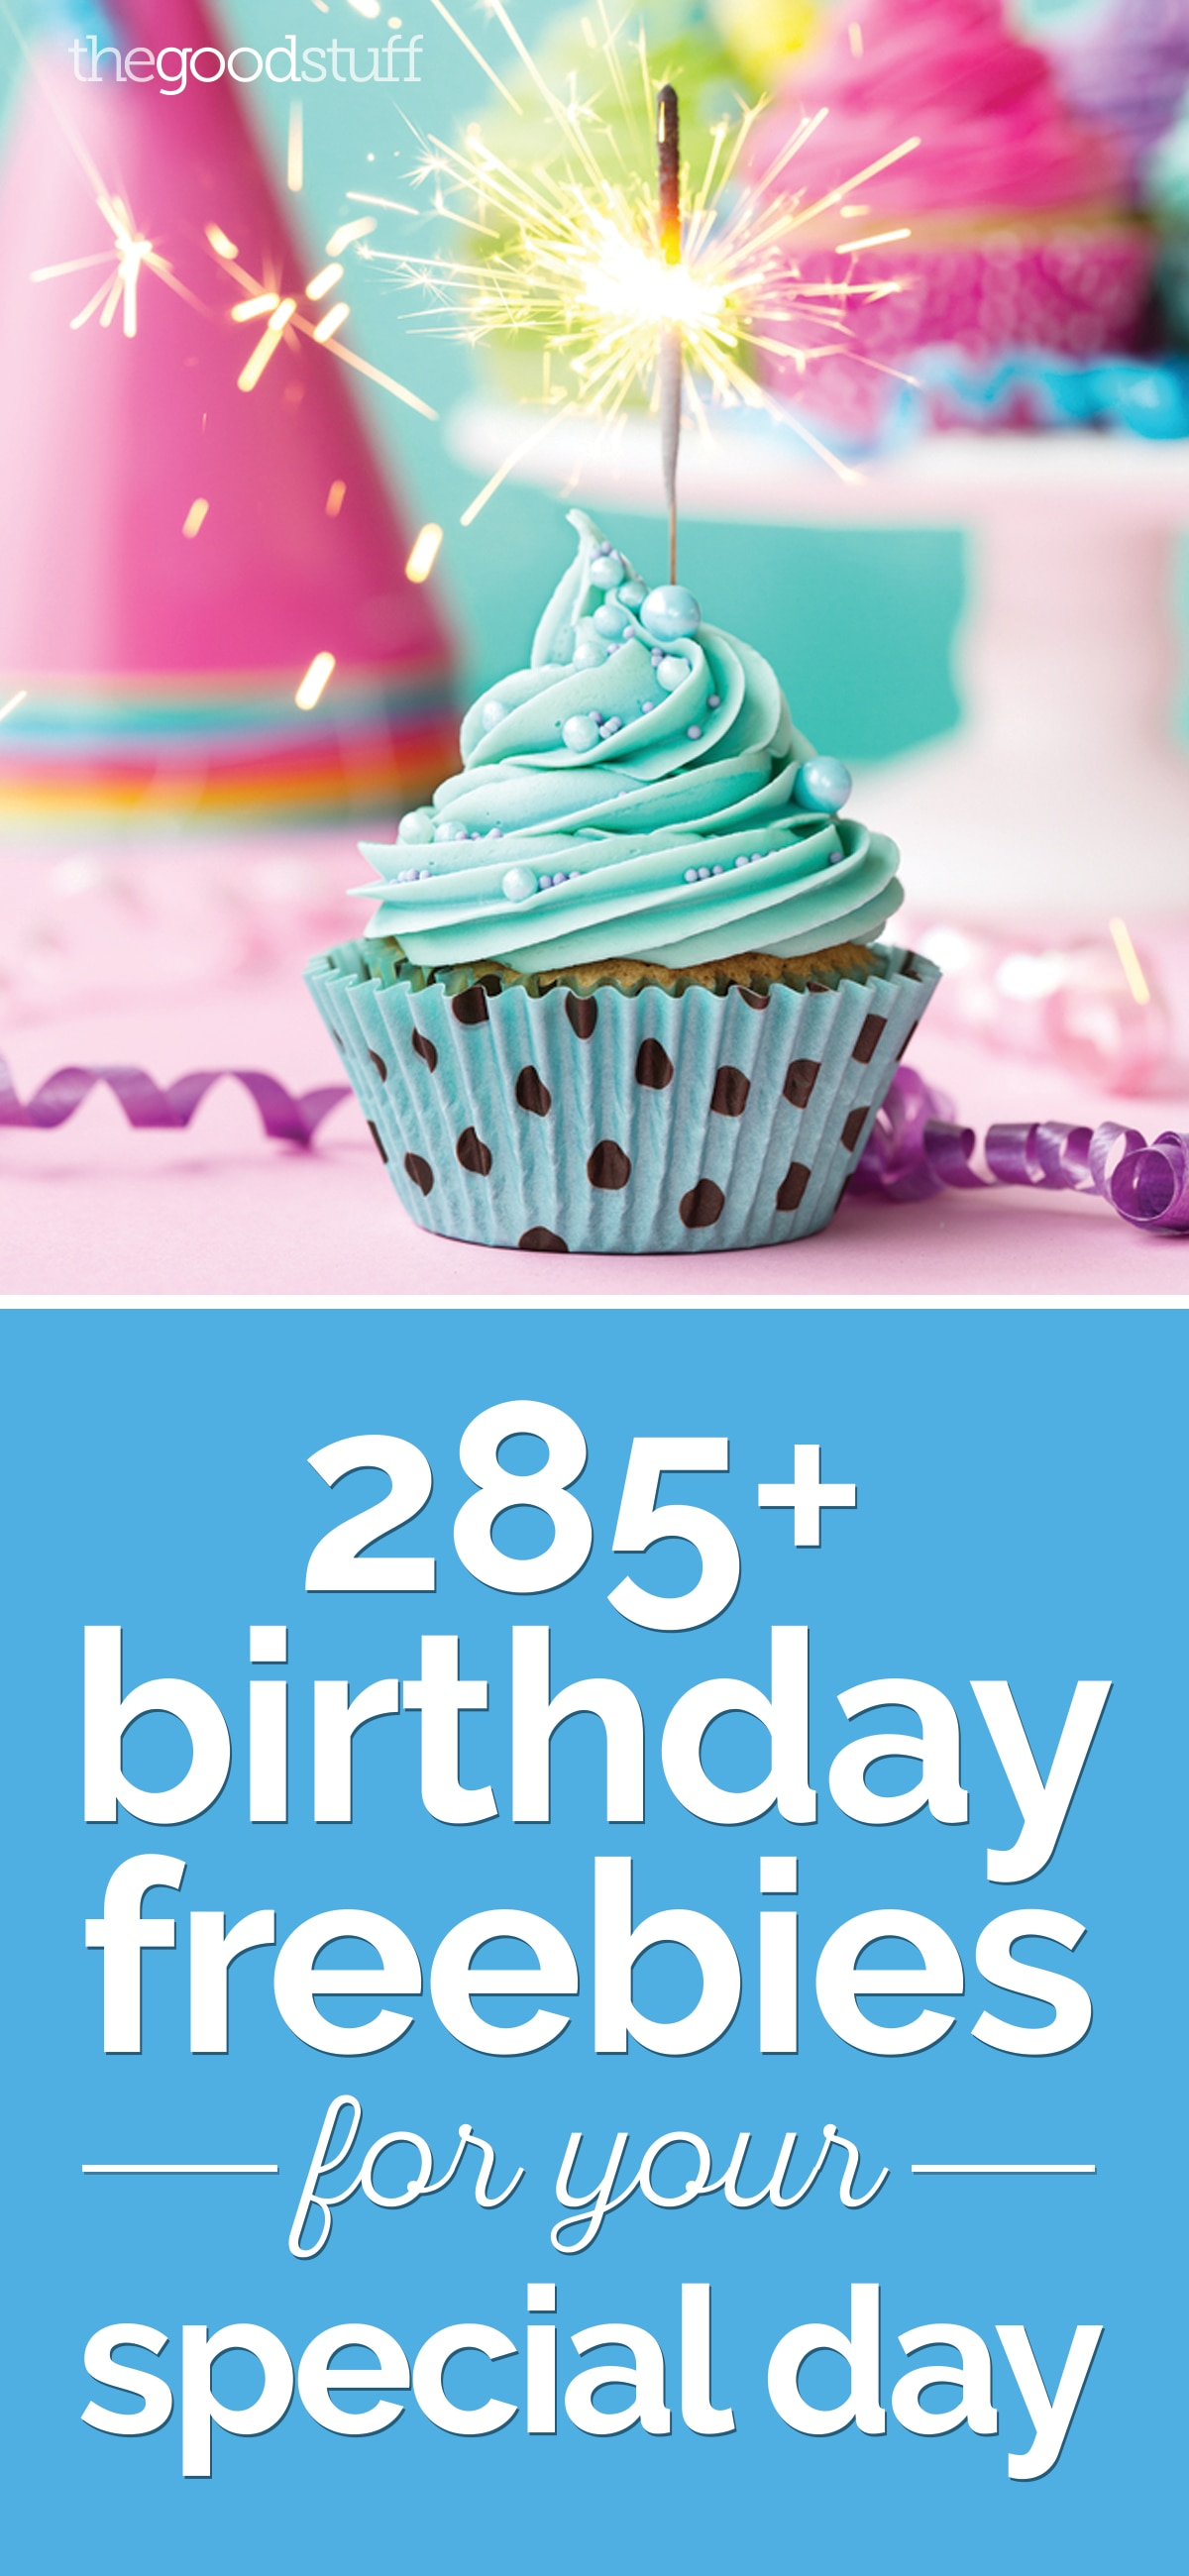 285 Birthday Freebies For Your Special Day